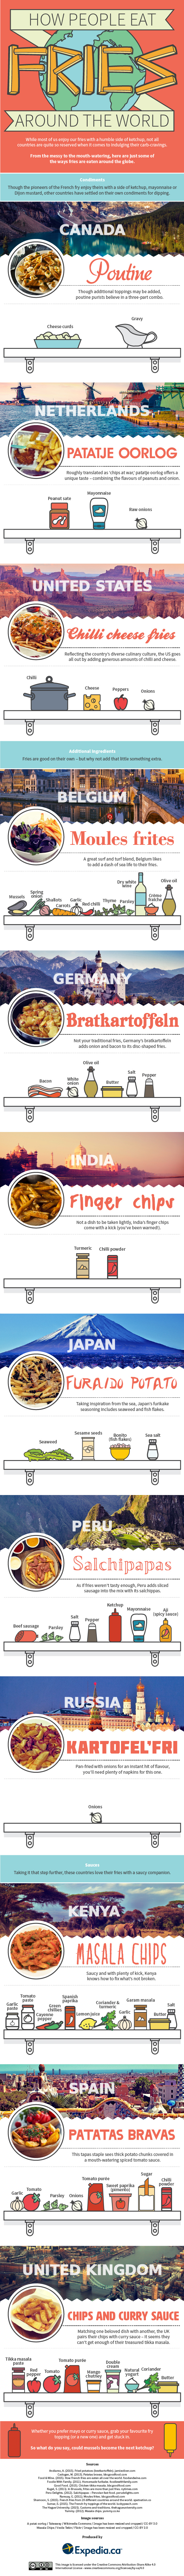 How People Eat Fries Around the World